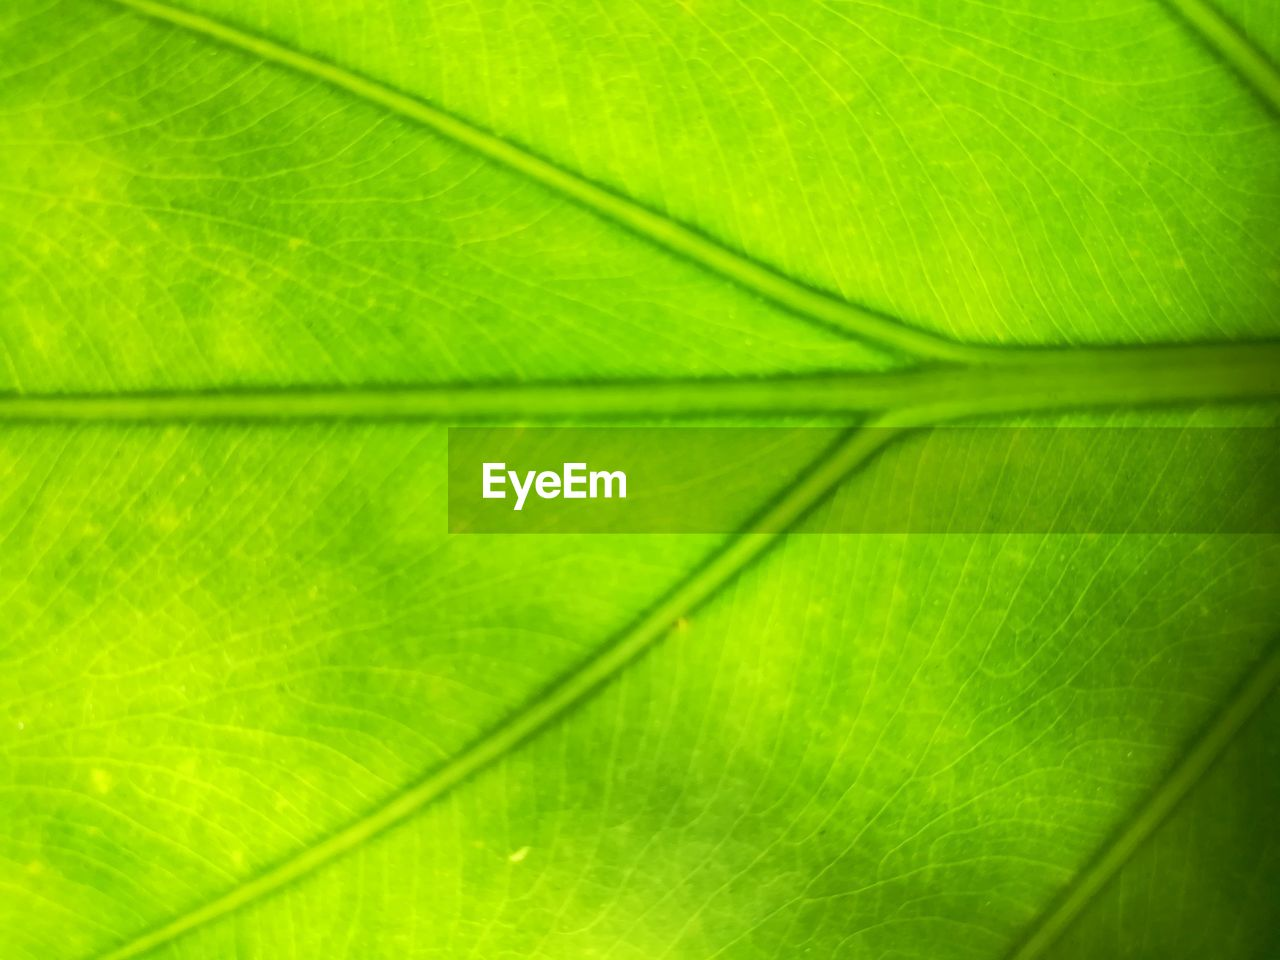 plant part, leaf, backgrounds, green color, full frame, close-up, leaf vein, plant, beauty in nature, nature, no people, freshness, natural pattern, pattern, growth, macro, textured, botany, day, outdoors, leaves, palm leaf, focus, brightly lit, textured effect